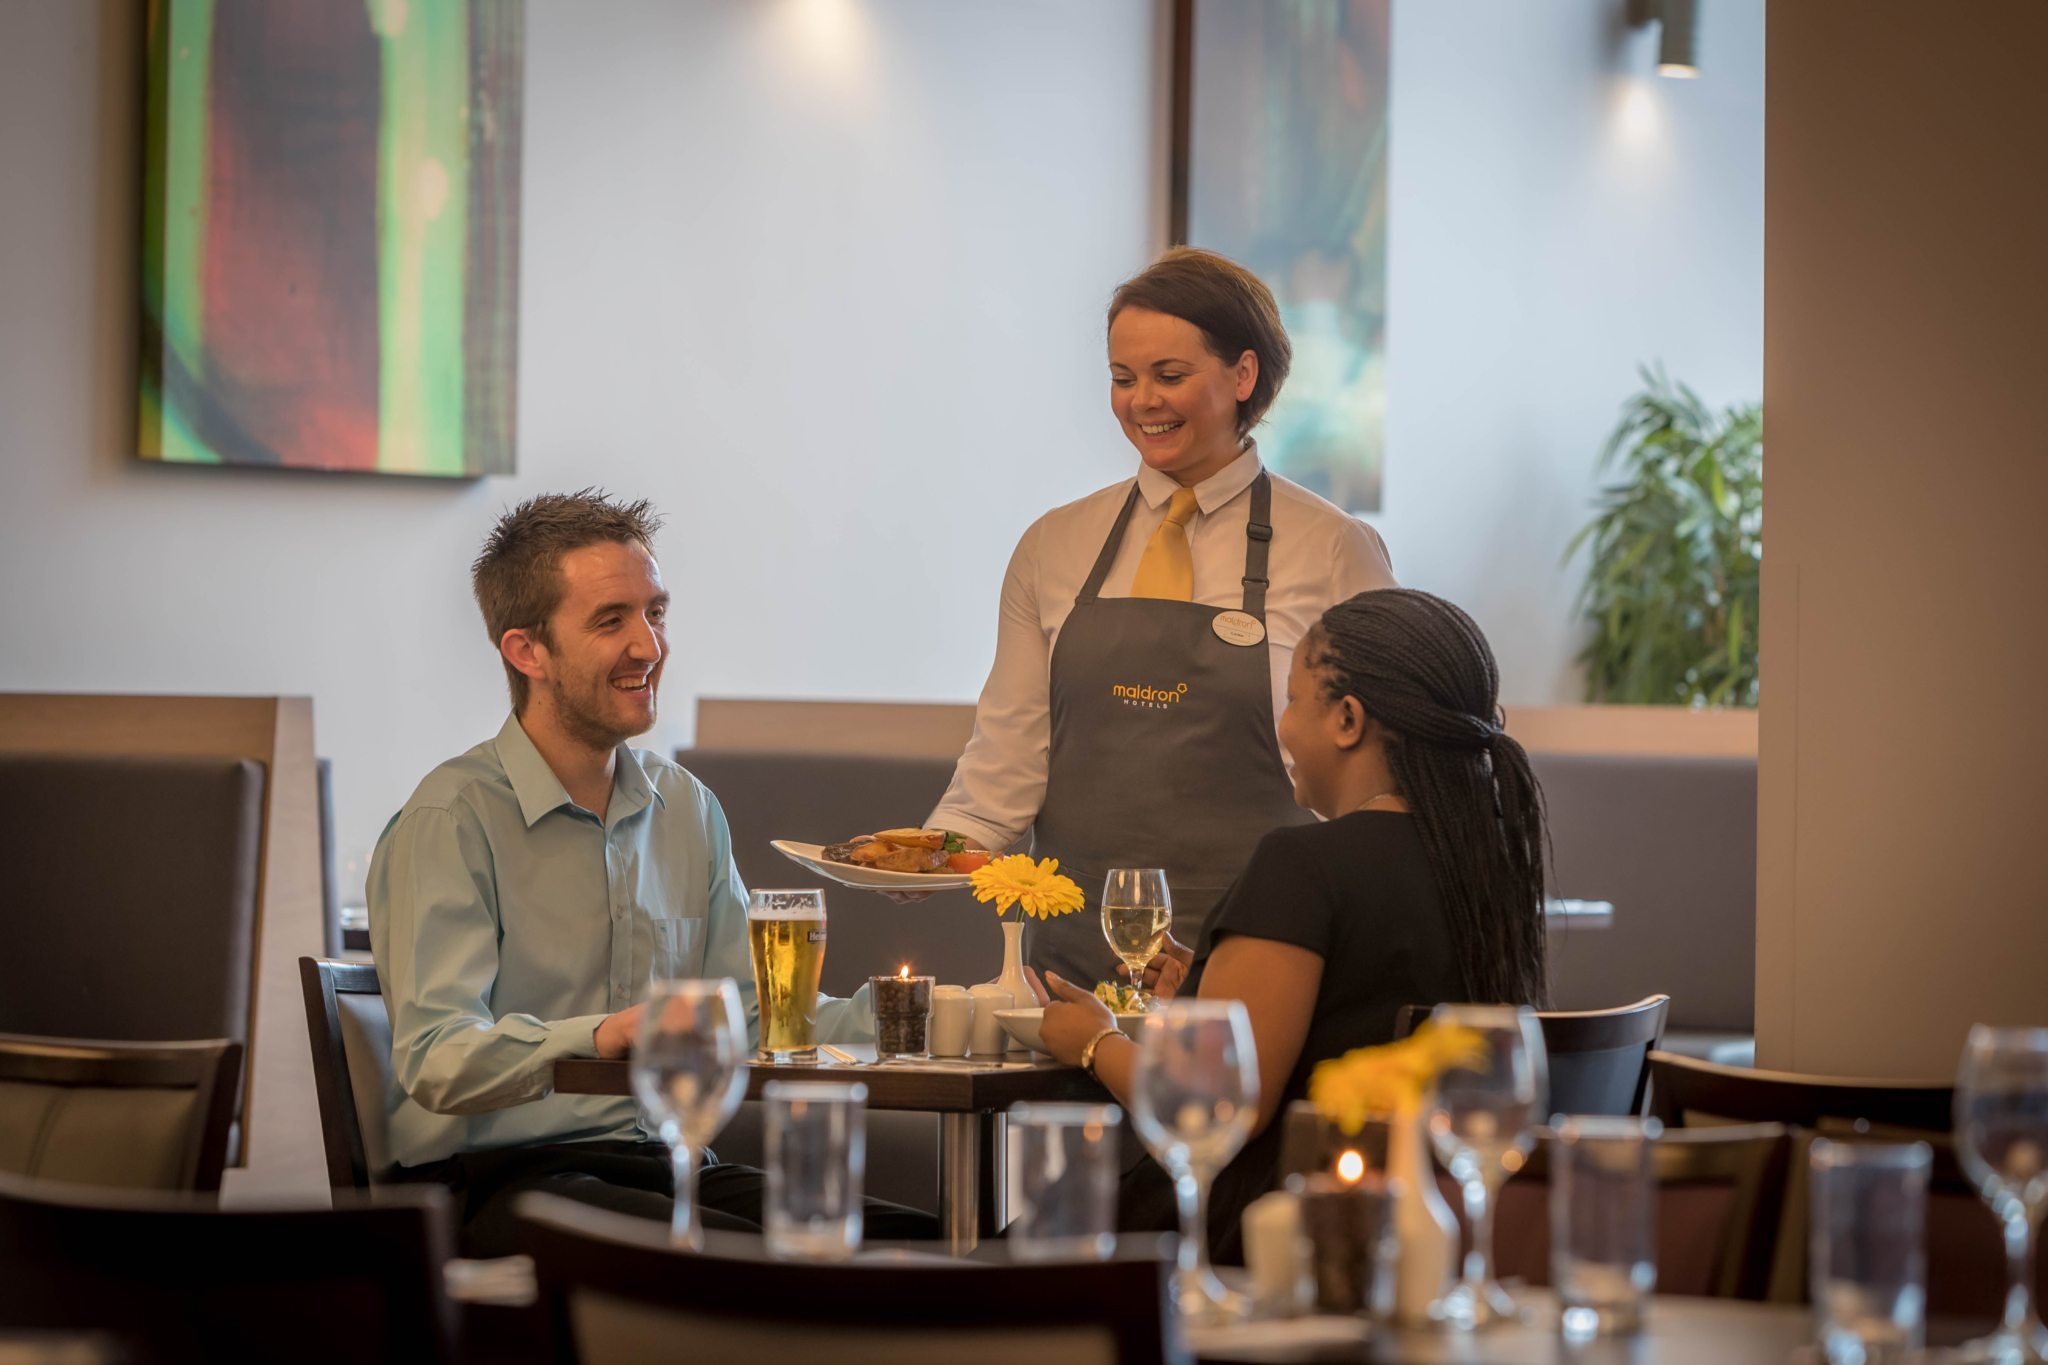 Guests dining in Maldron Hotel Tallaght restaurant